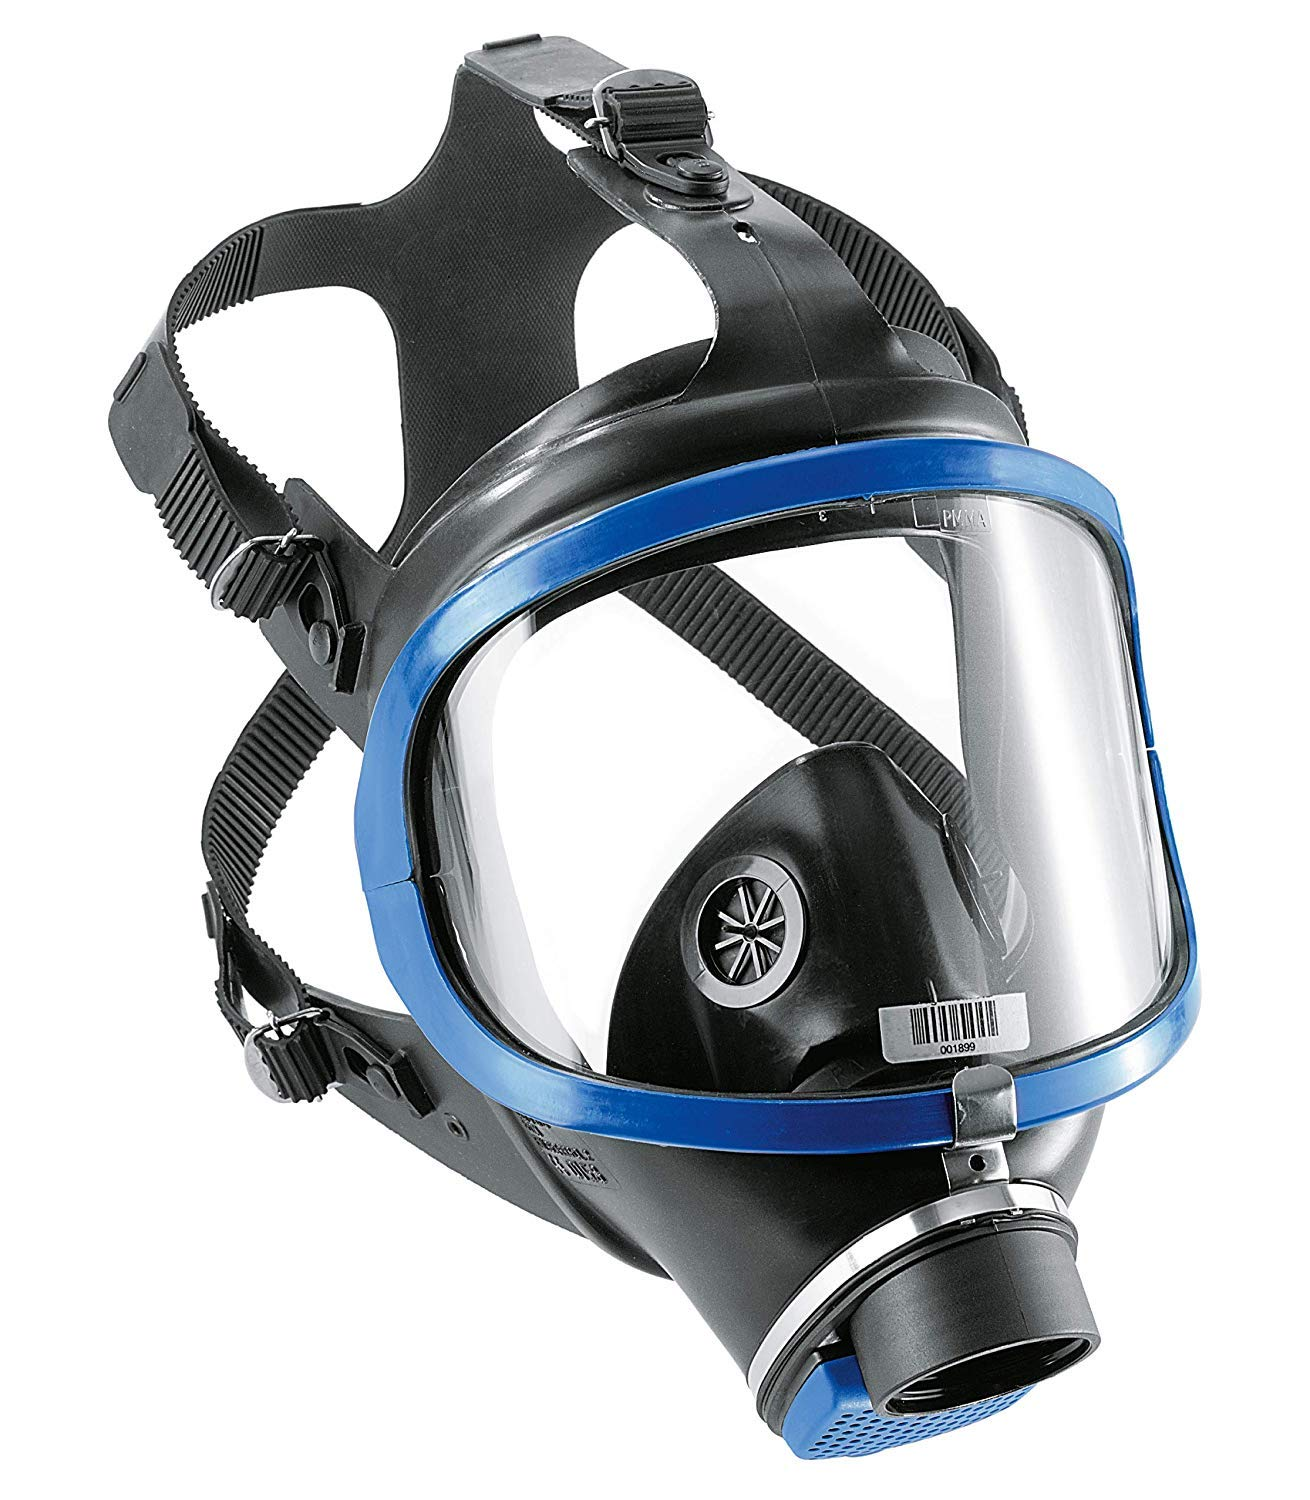 Dräger X-plore 6300Full-Face Respirator Mask | NIOSH Certified | Eye and Respiratory Protection | Anti-Fog | 180° Field of View | Universal Size by Dräger (Image #1)